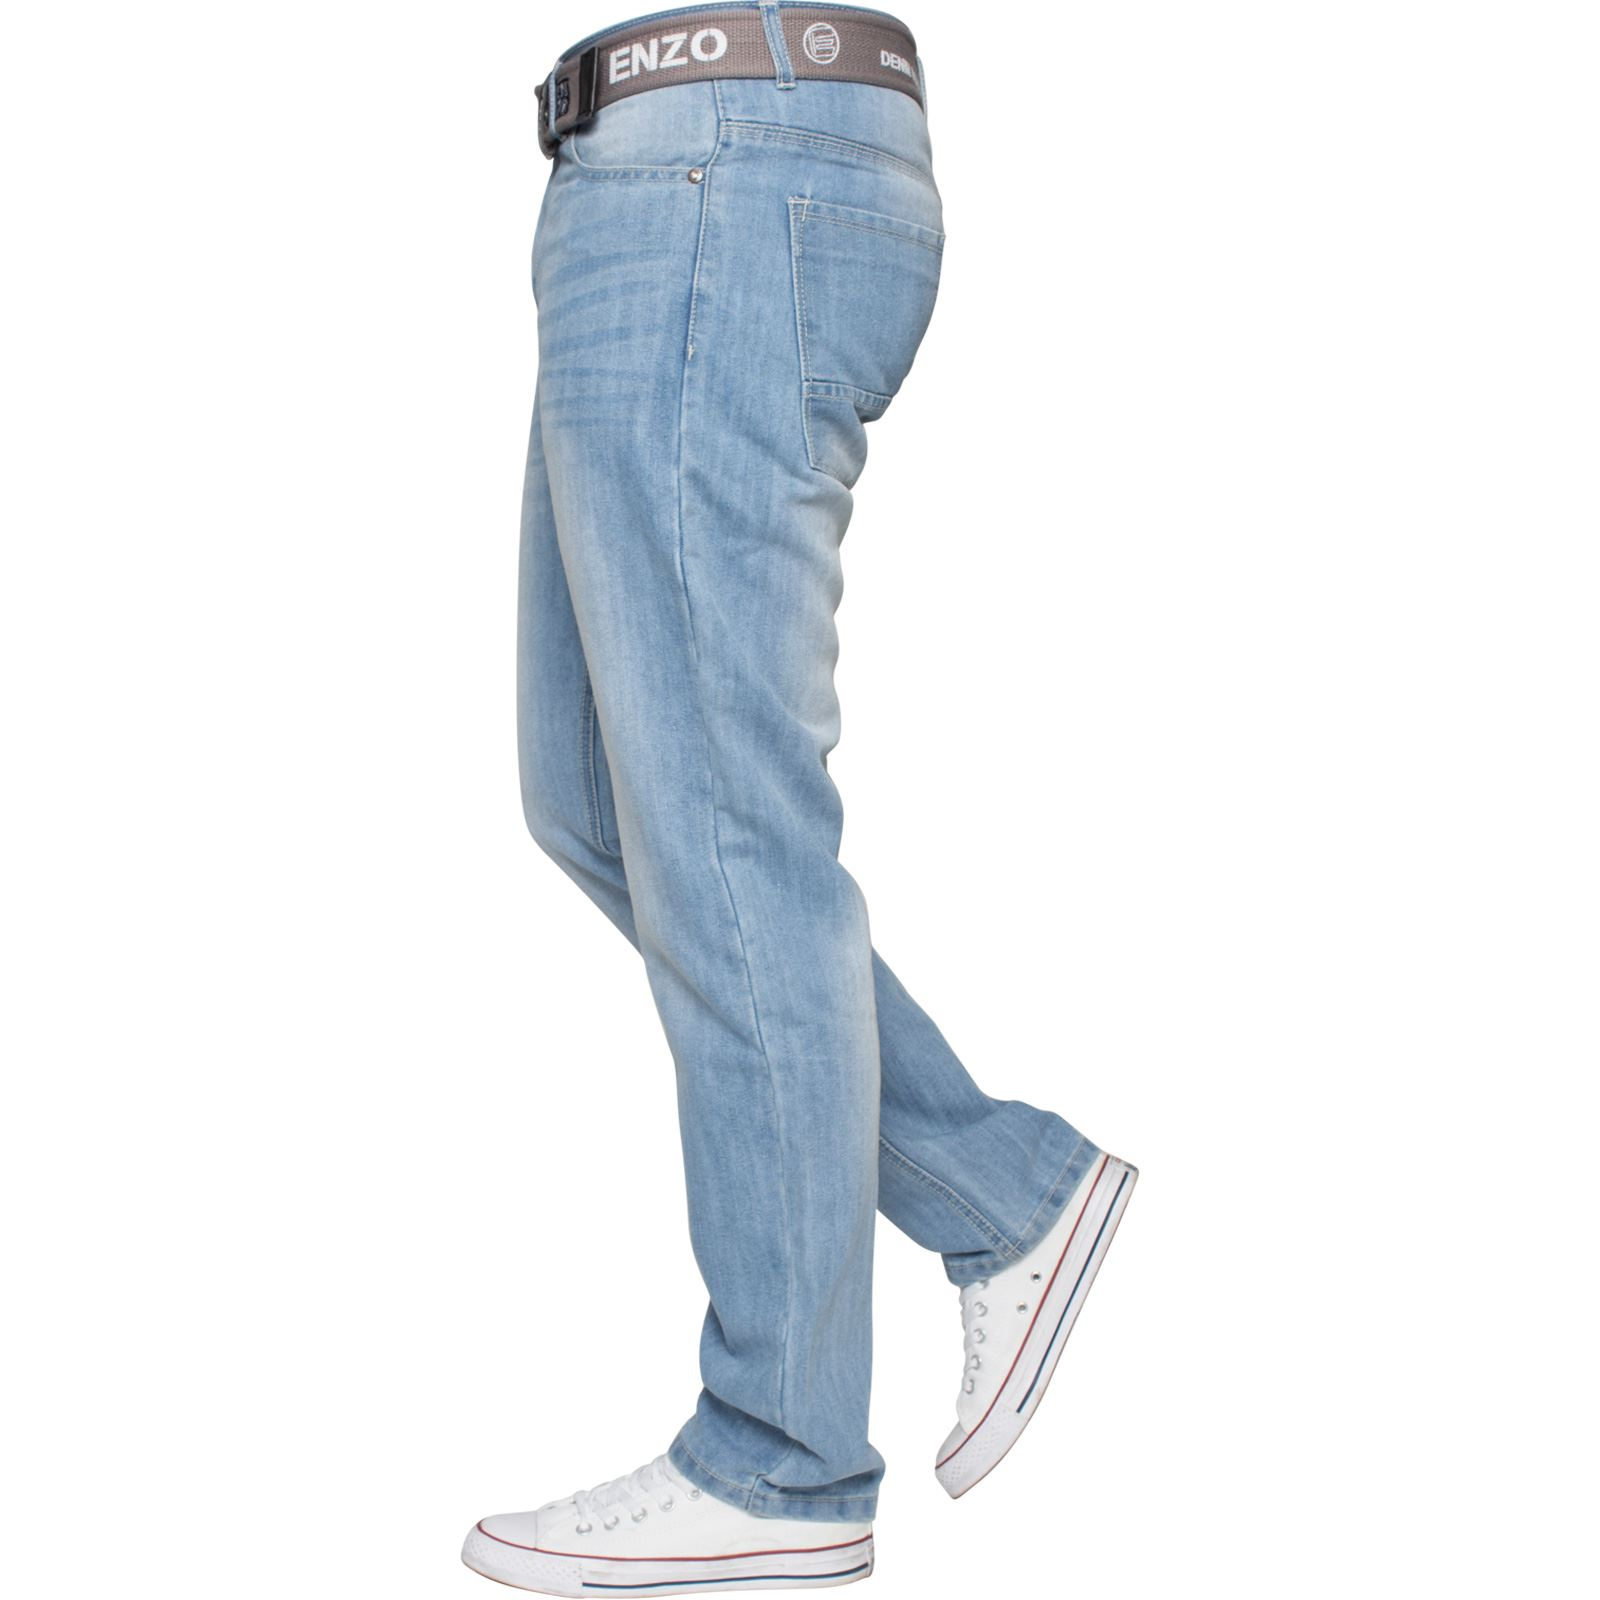 Enzo-Mens-Straight-Leg-Jeans-Regular-Fit-Denim-Pants-Big-Tall-All-Waists-Sizes thumbnail 21